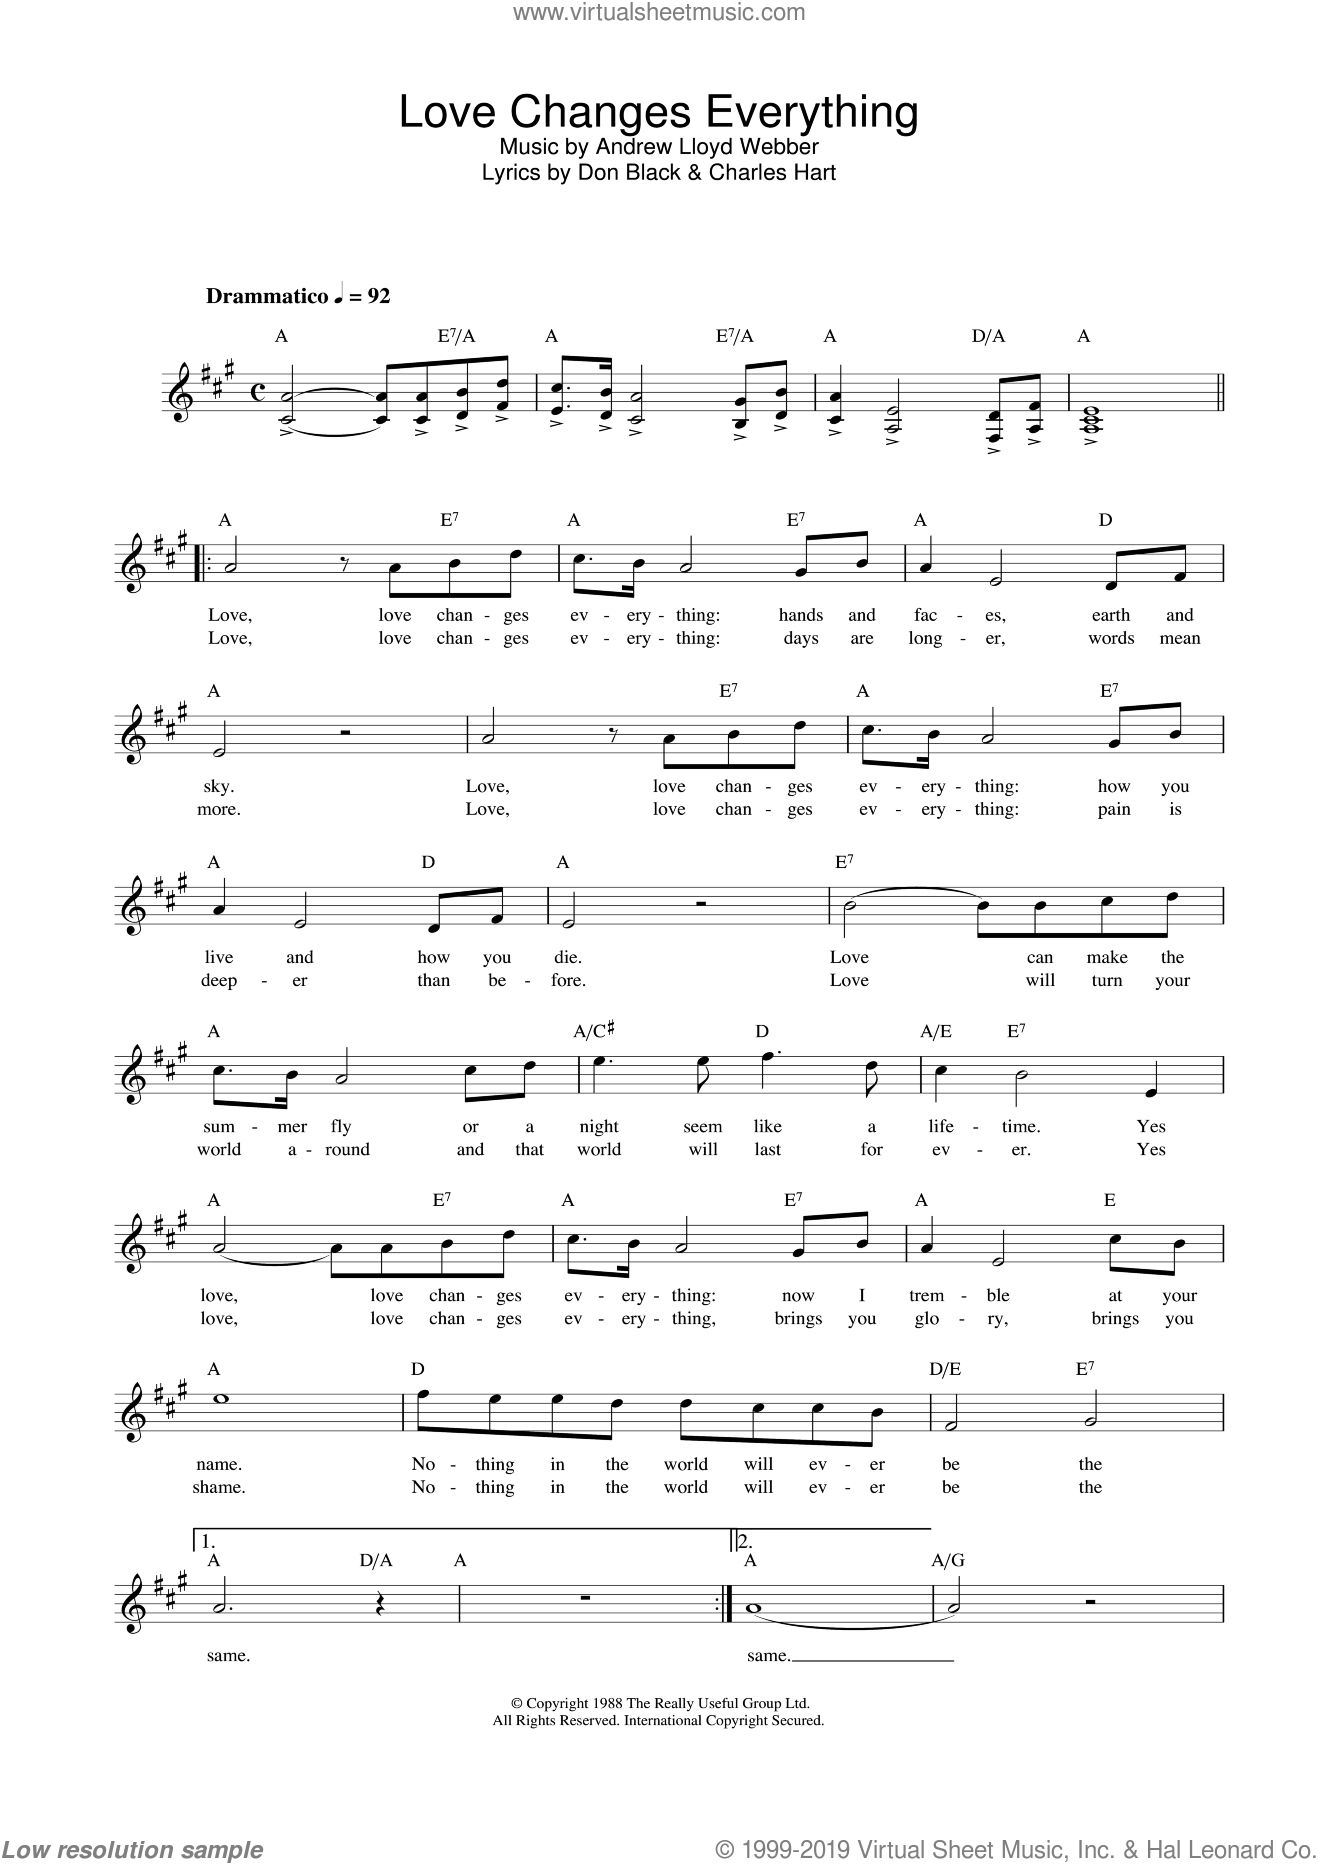 Love Changes Everything (from Aspects Of Love) sheet music for voice and other instruments (fake book) by Andrew Lloyd Webber, Michael Ball, Charles Hart and Don Black, intermediate skill level